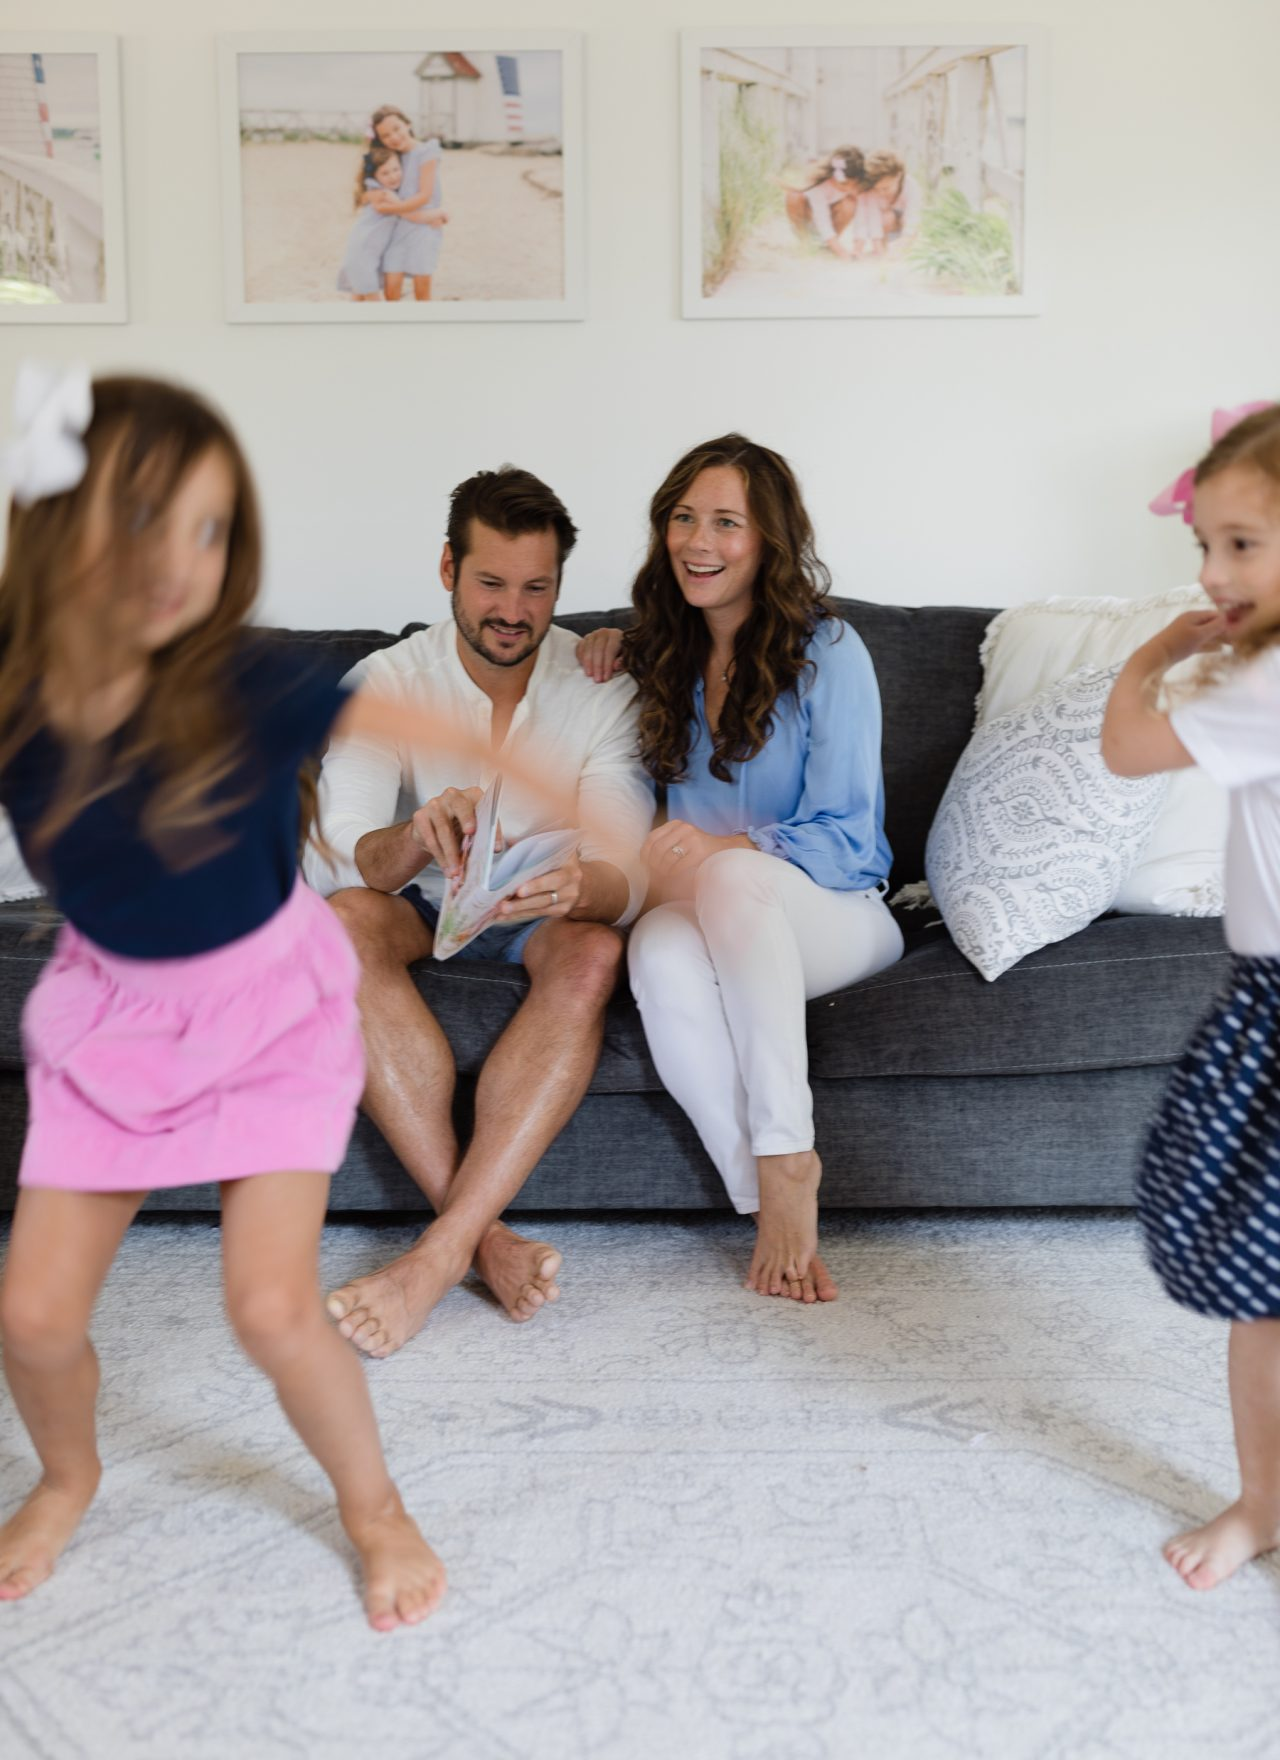 Mom and Dad on couch looking at photo book while girls dance in front of them